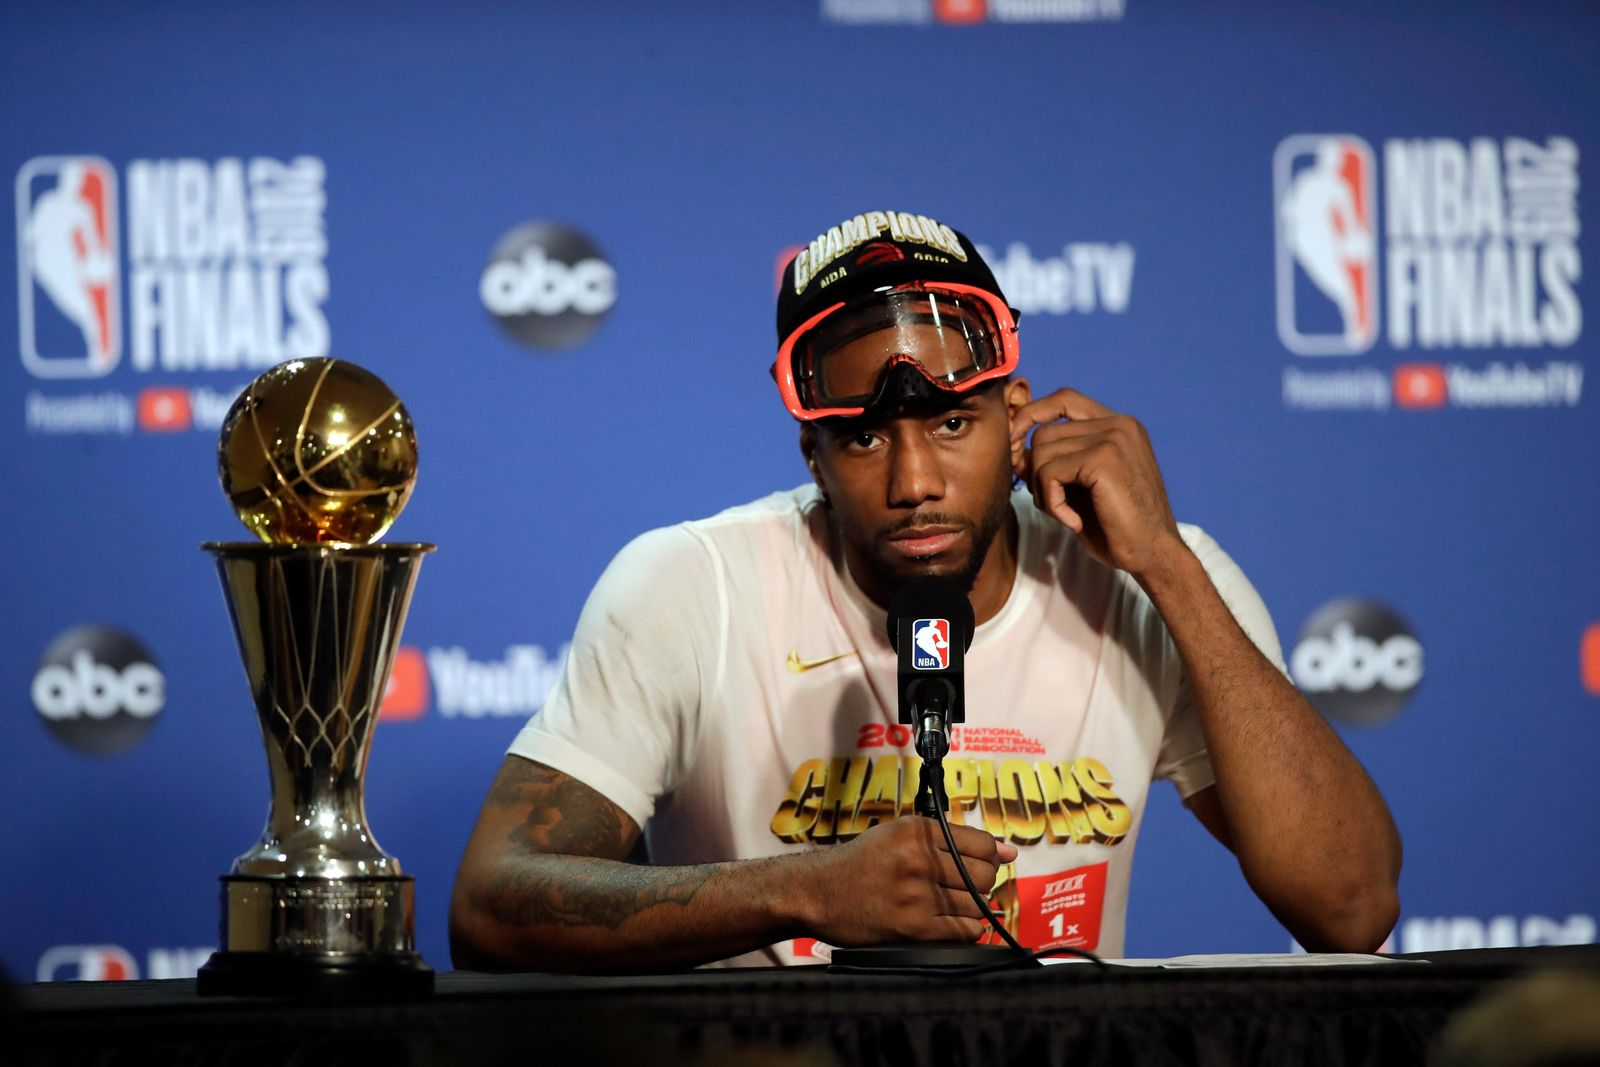 Toronto Raptors forward Kawhi Leonard speaks at a news conference alongside the NBA Finals Most Valuable Player trophy after the Raptors defeated the Golden State Warriors in Game 6 of basketball's NBA Finals in Oakland, Calif., Thursday, June 13, 2019. (AP Photo/Ben Margot)